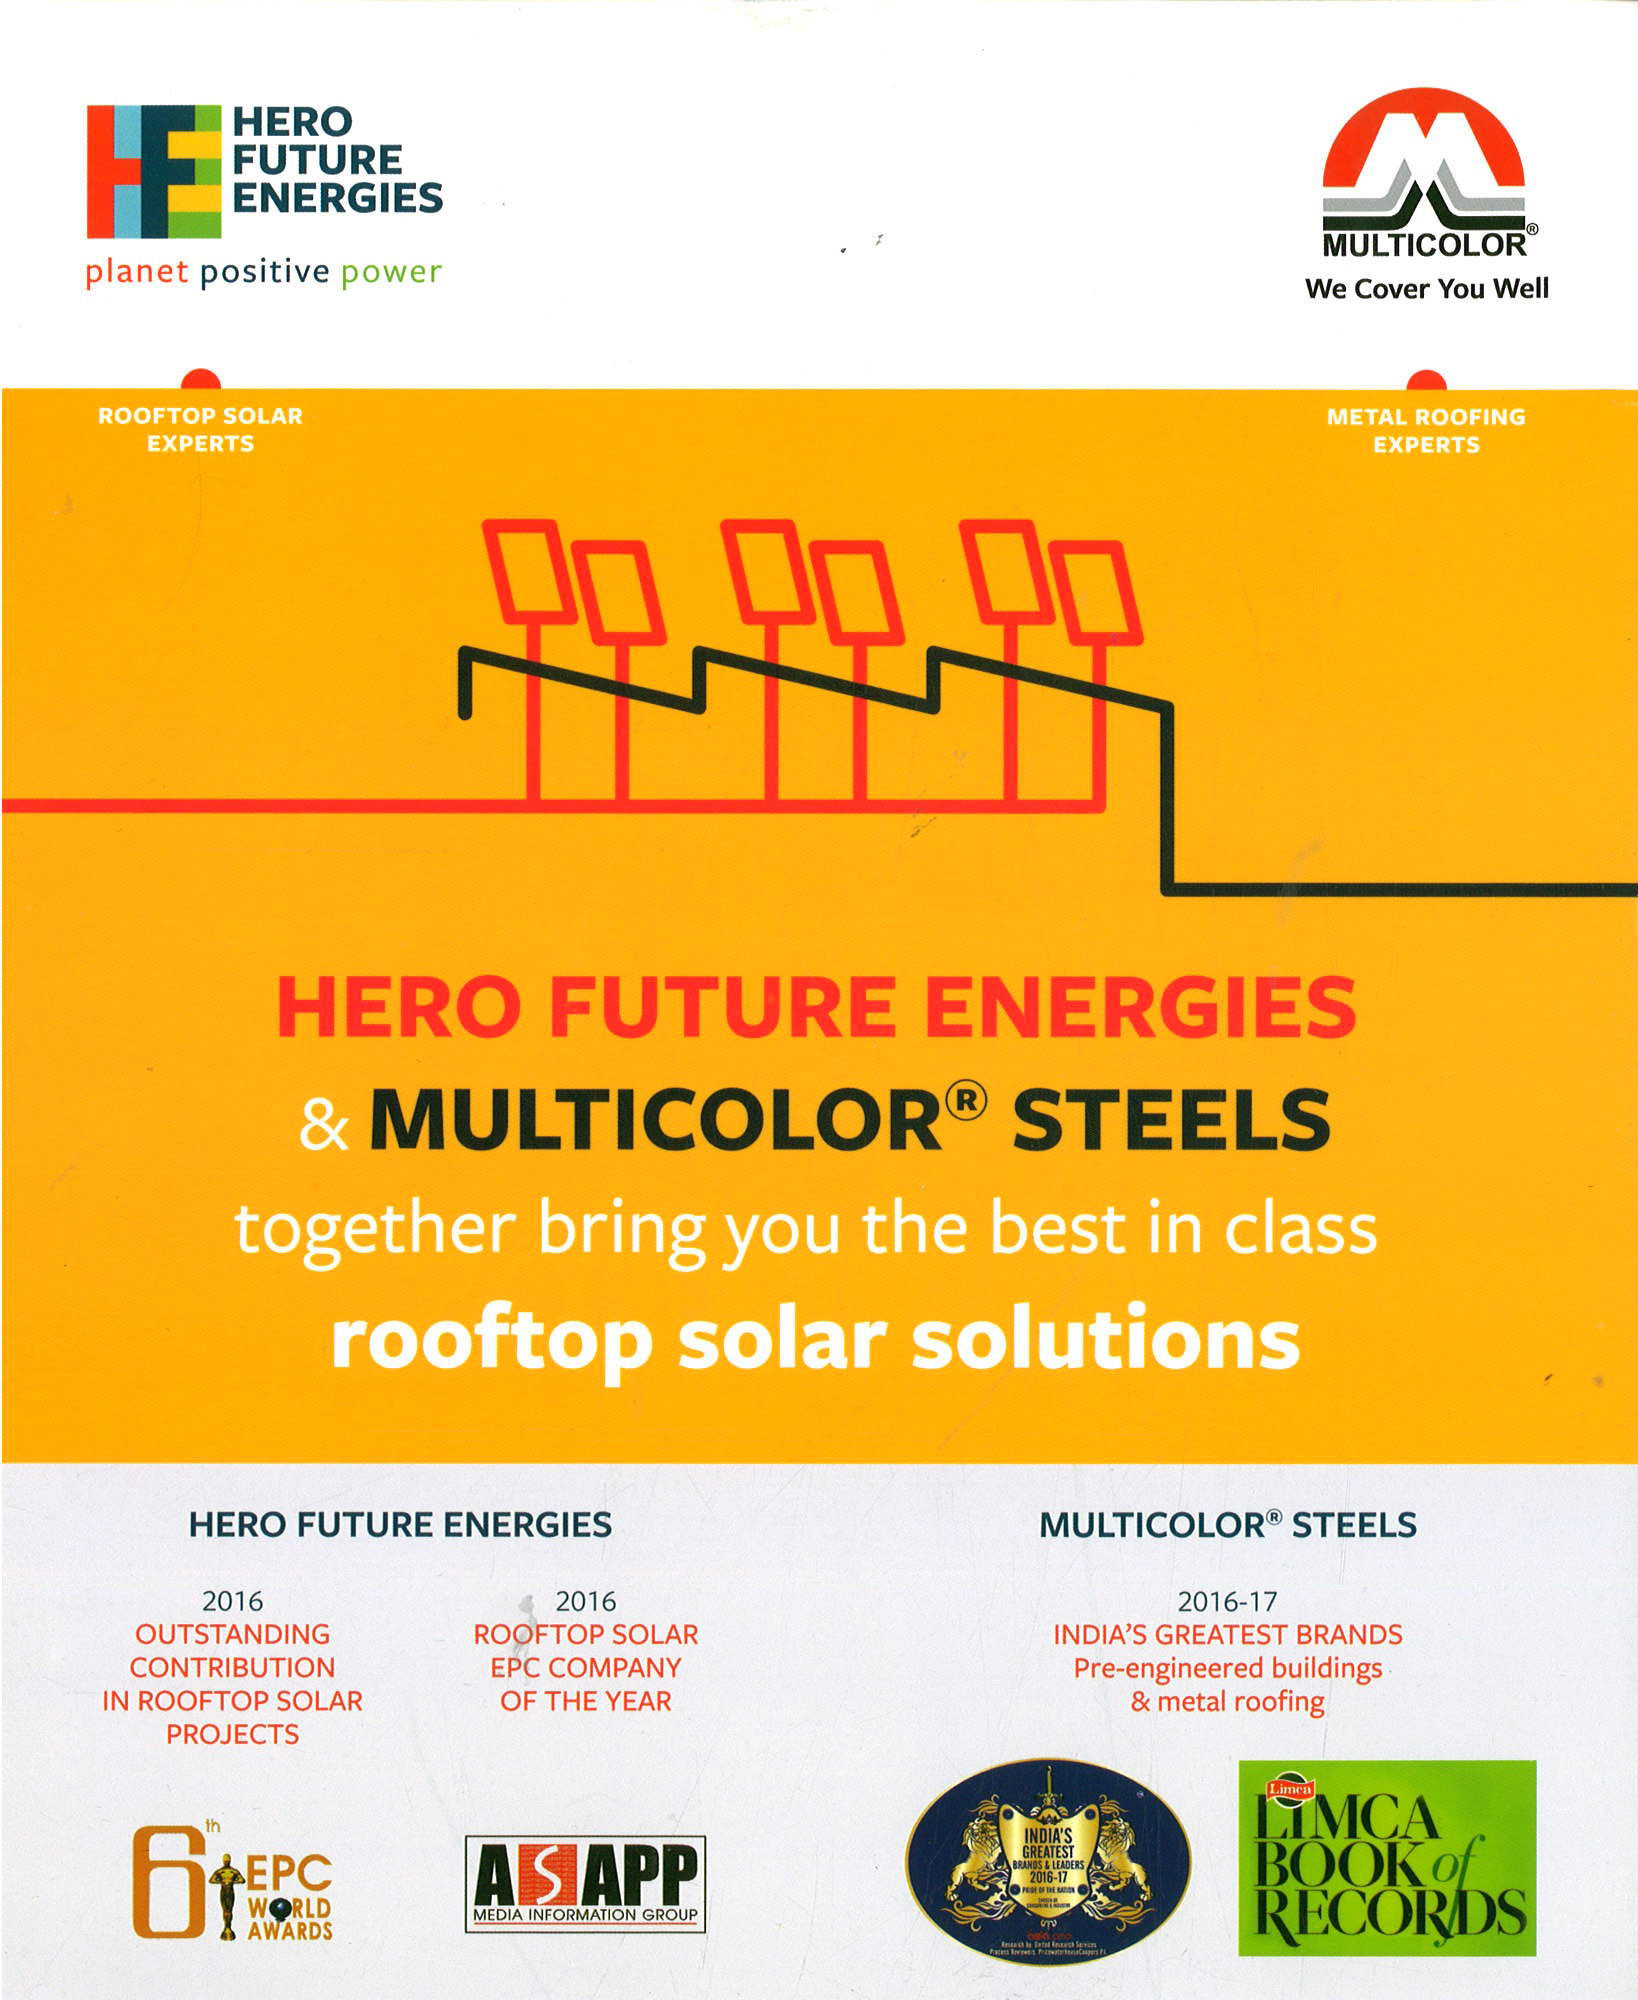 Roof & Rooftop Solar Solutions by Multicolor® Steels